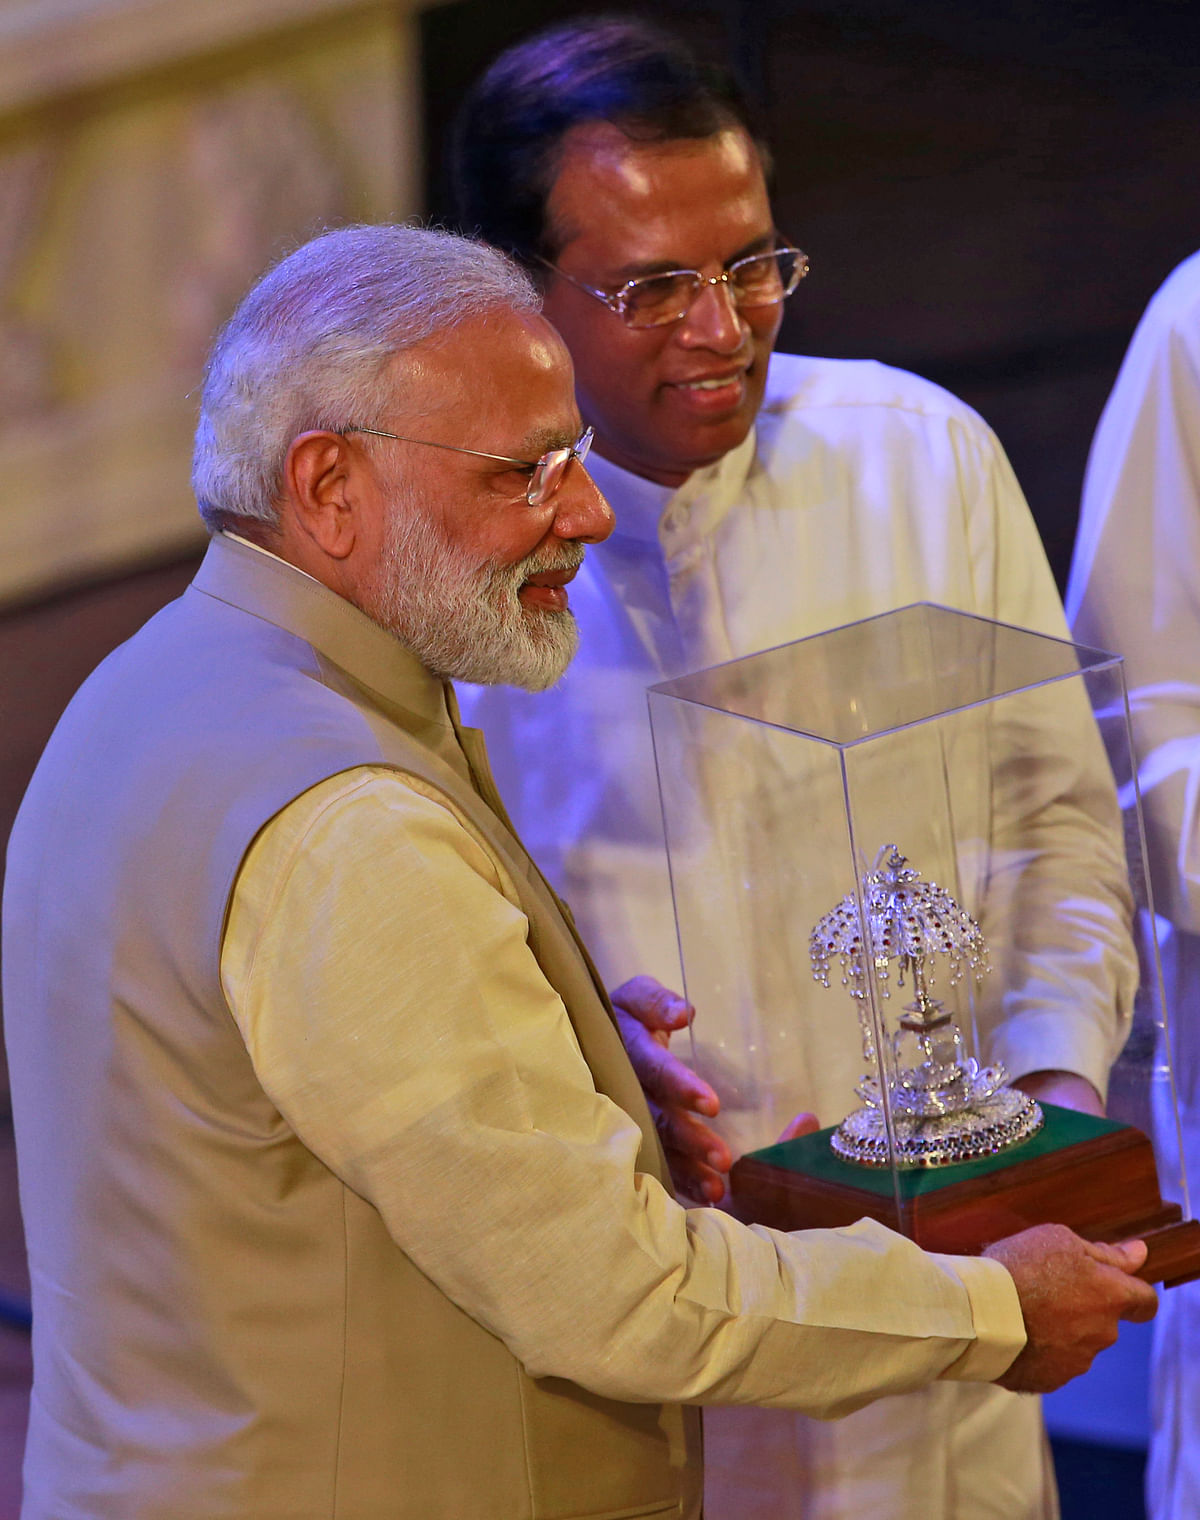 Narendra Modi with Sri Lankan President Maithripala Sirisena in Colombo on 12 May. (Photo: AP)